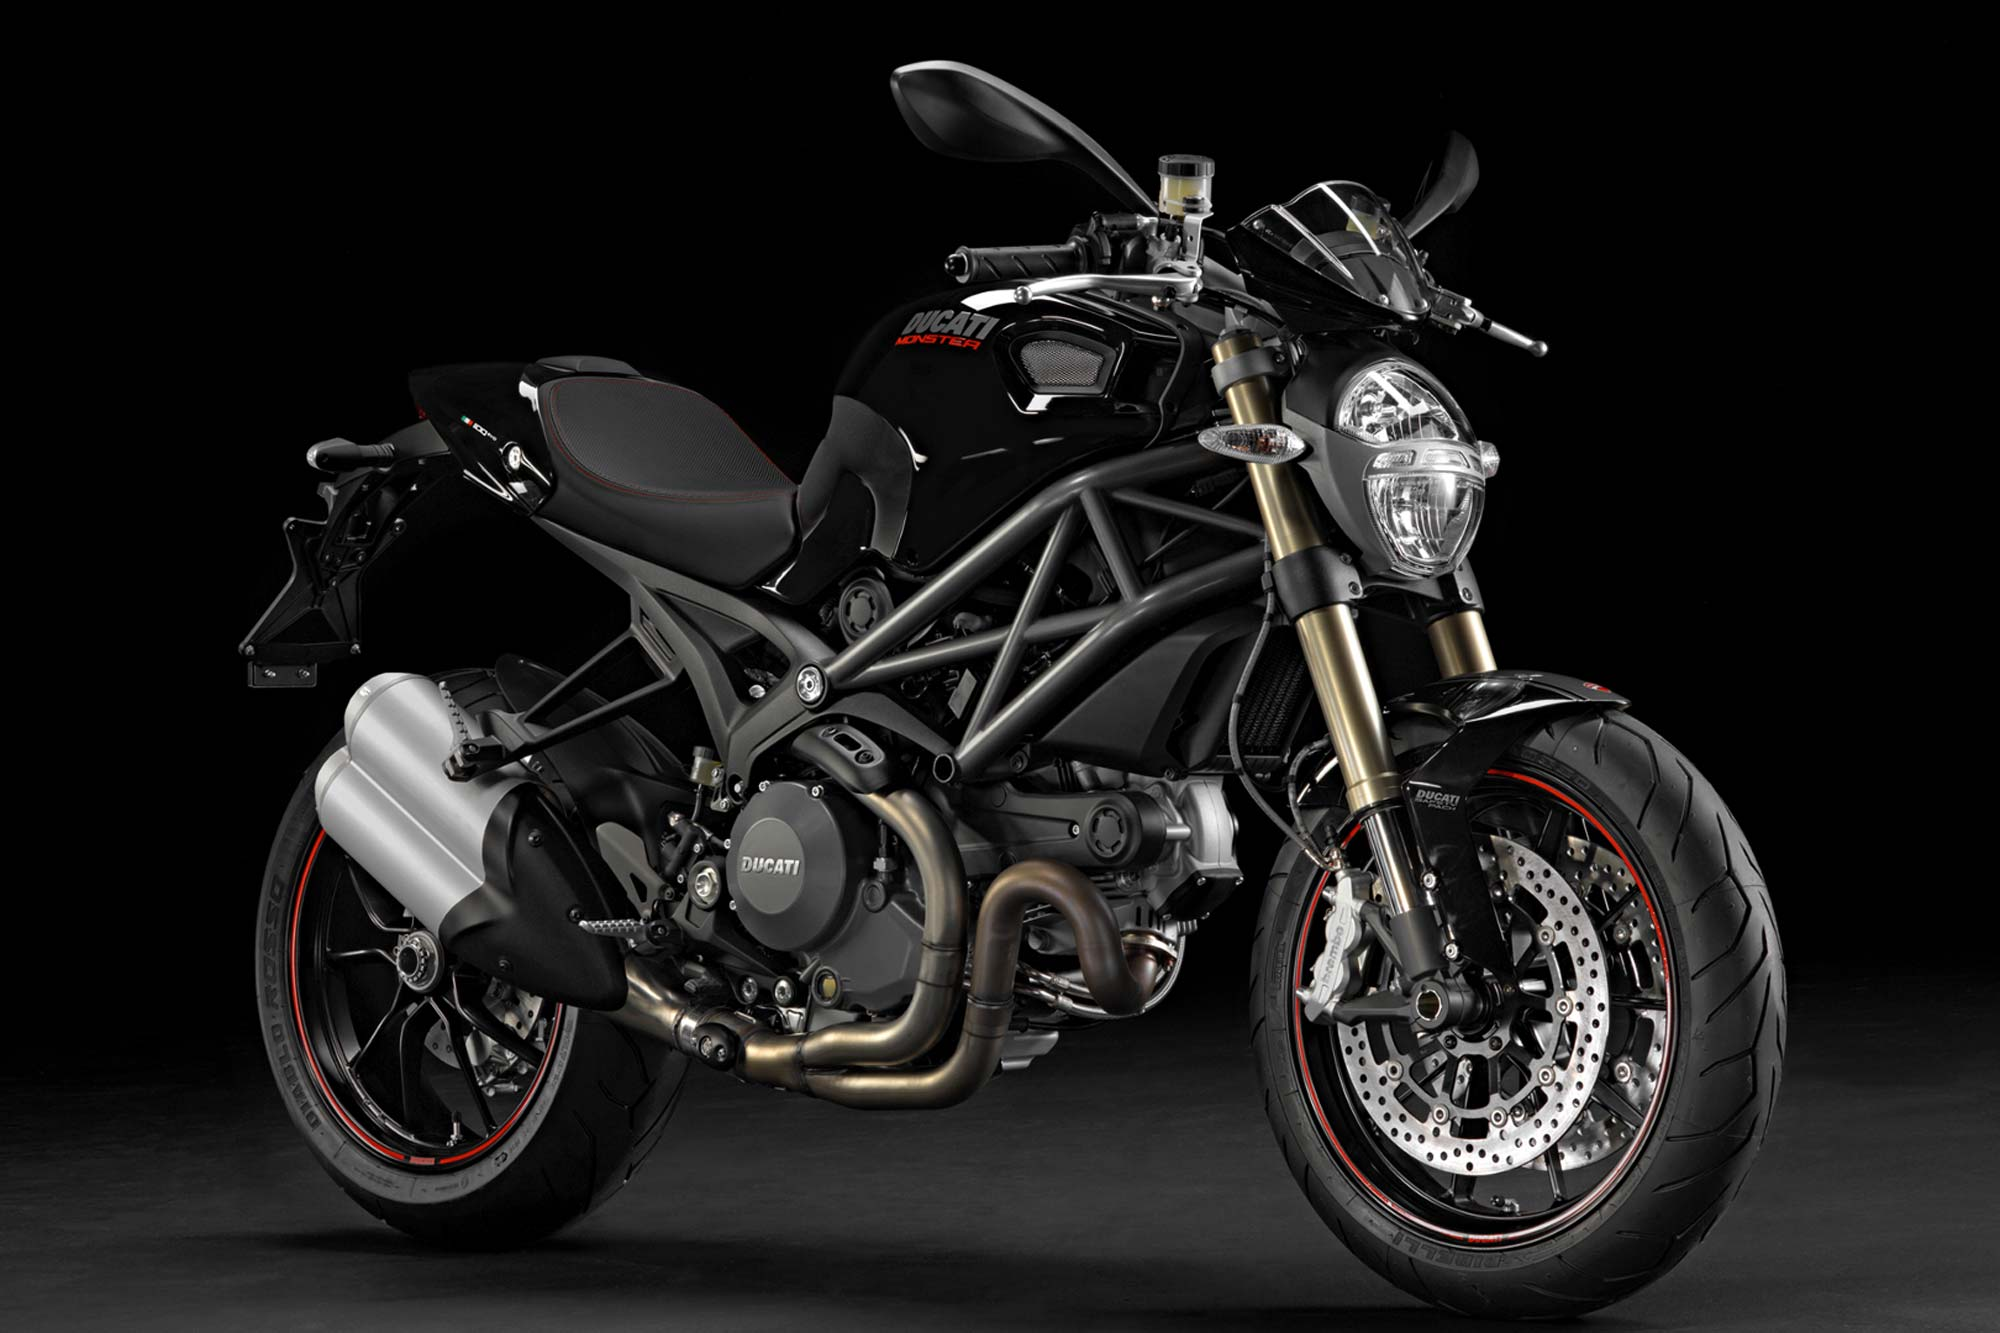 Ducati Multistrada 1200 S Sport 2011 wallpapers #12877